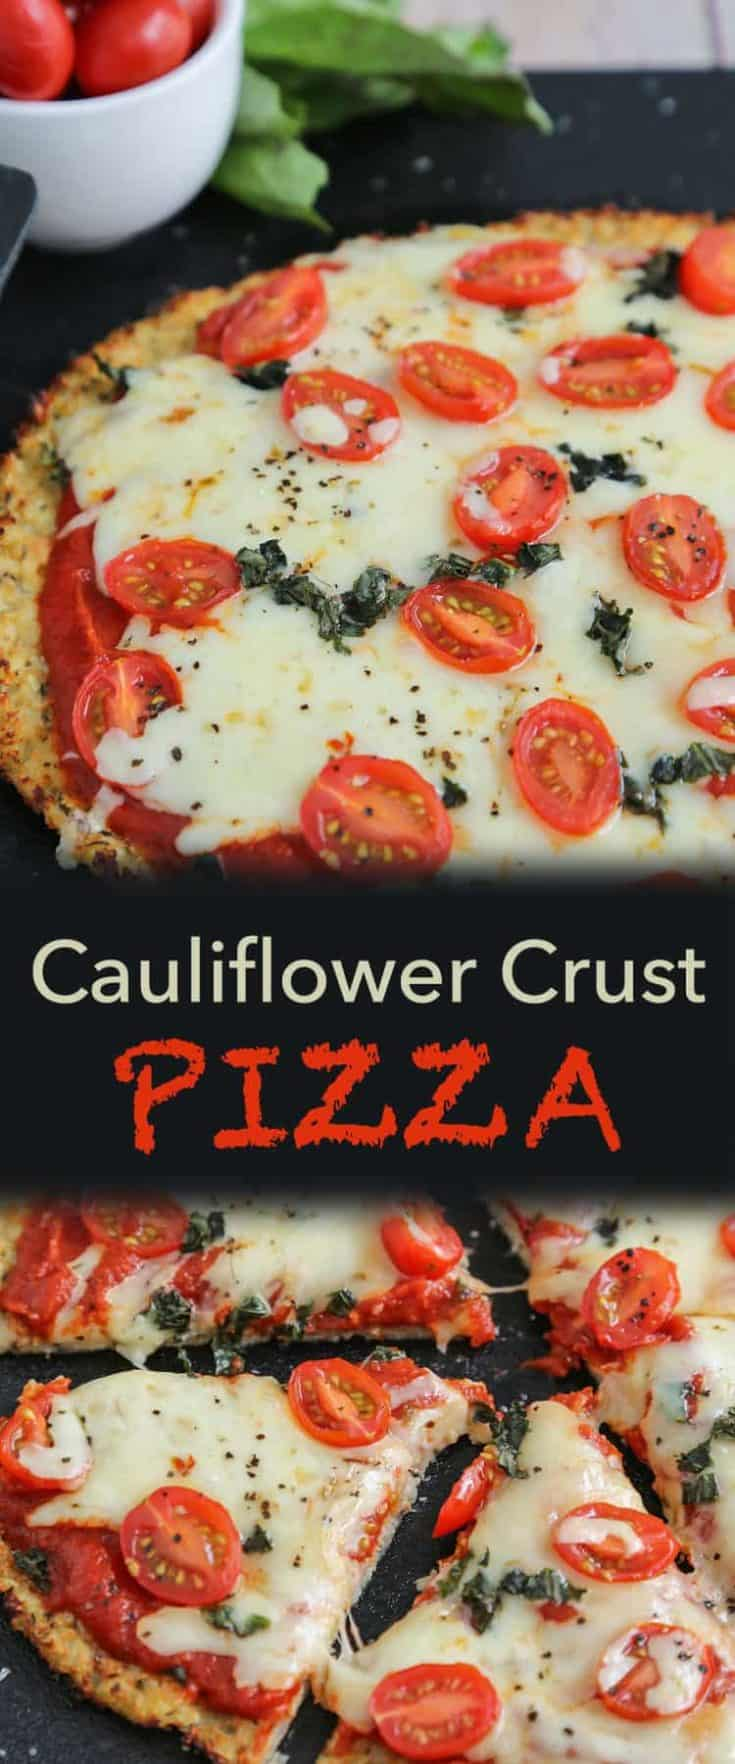 Cheesy Cauliflower Crust Pizza, crispy crust that is close to traditional - but Low-Carb and Low-Calorie. #cauliflowerpizzacrust #cauliflowercrust #lowcarbpizza #ketopizza #keto #lowcarb #pizza